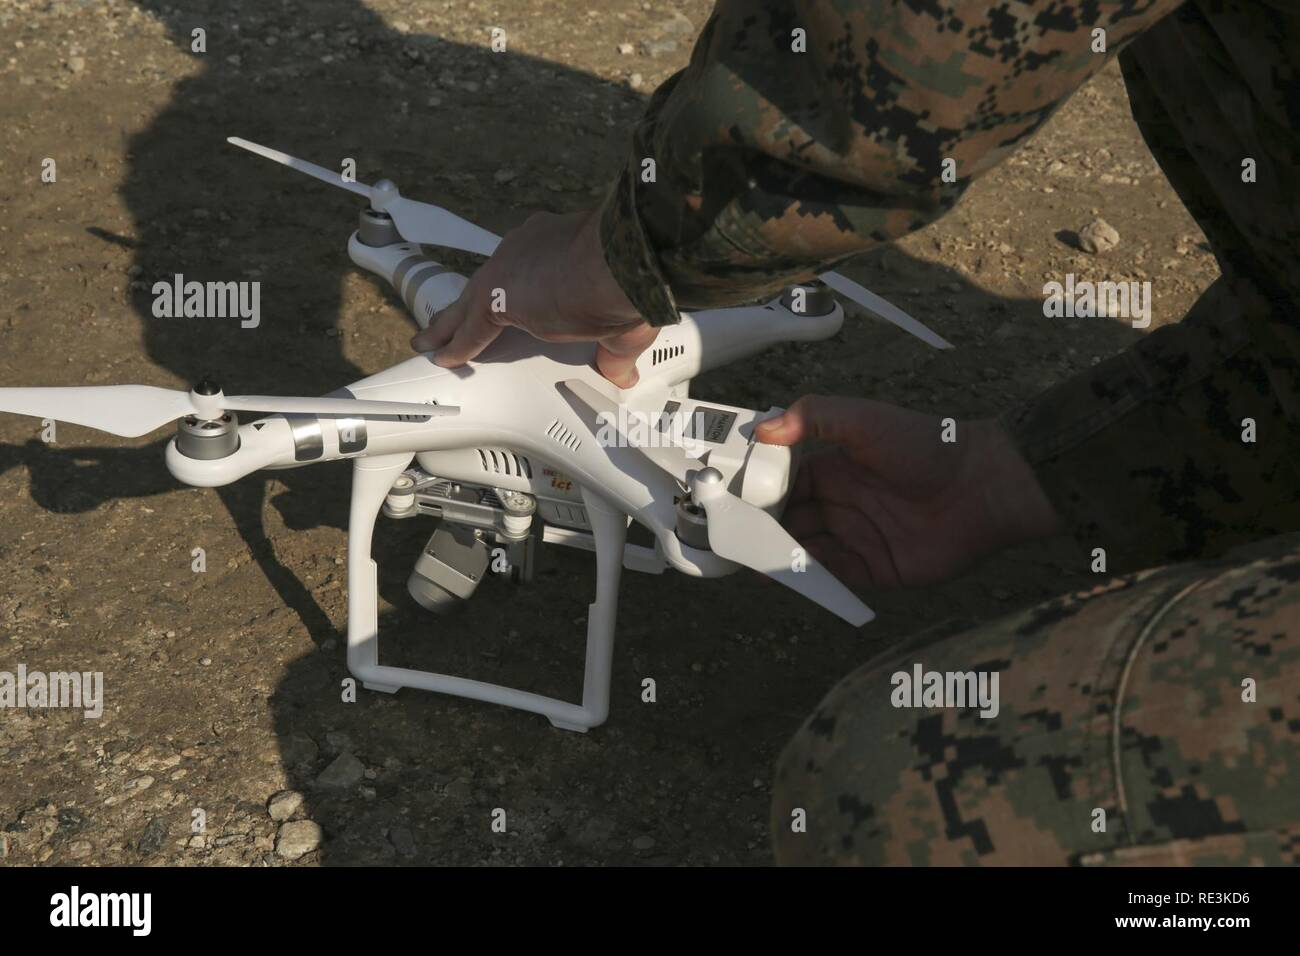 A Marine replaces a battery in the DJI Phantom 3 drone during a